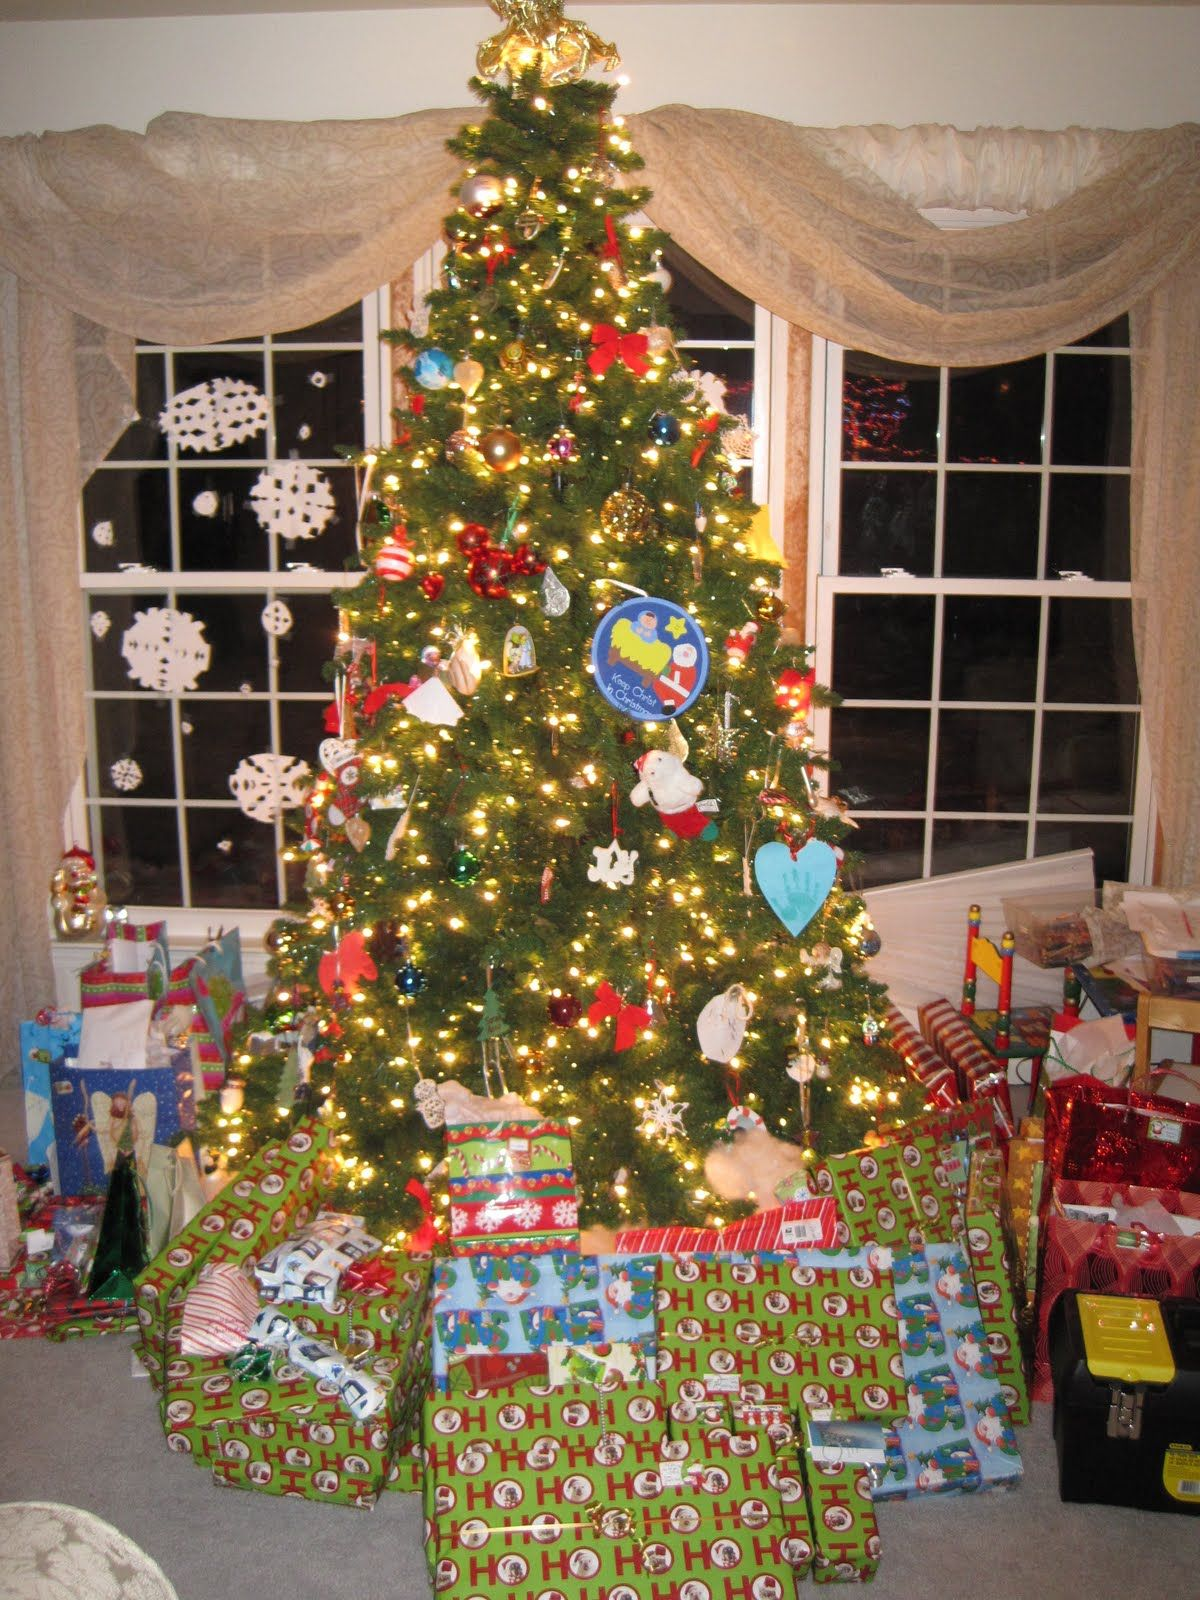 Christmas Presents Under Tree.Pin On My Xmas Wishlist Part 3 2015